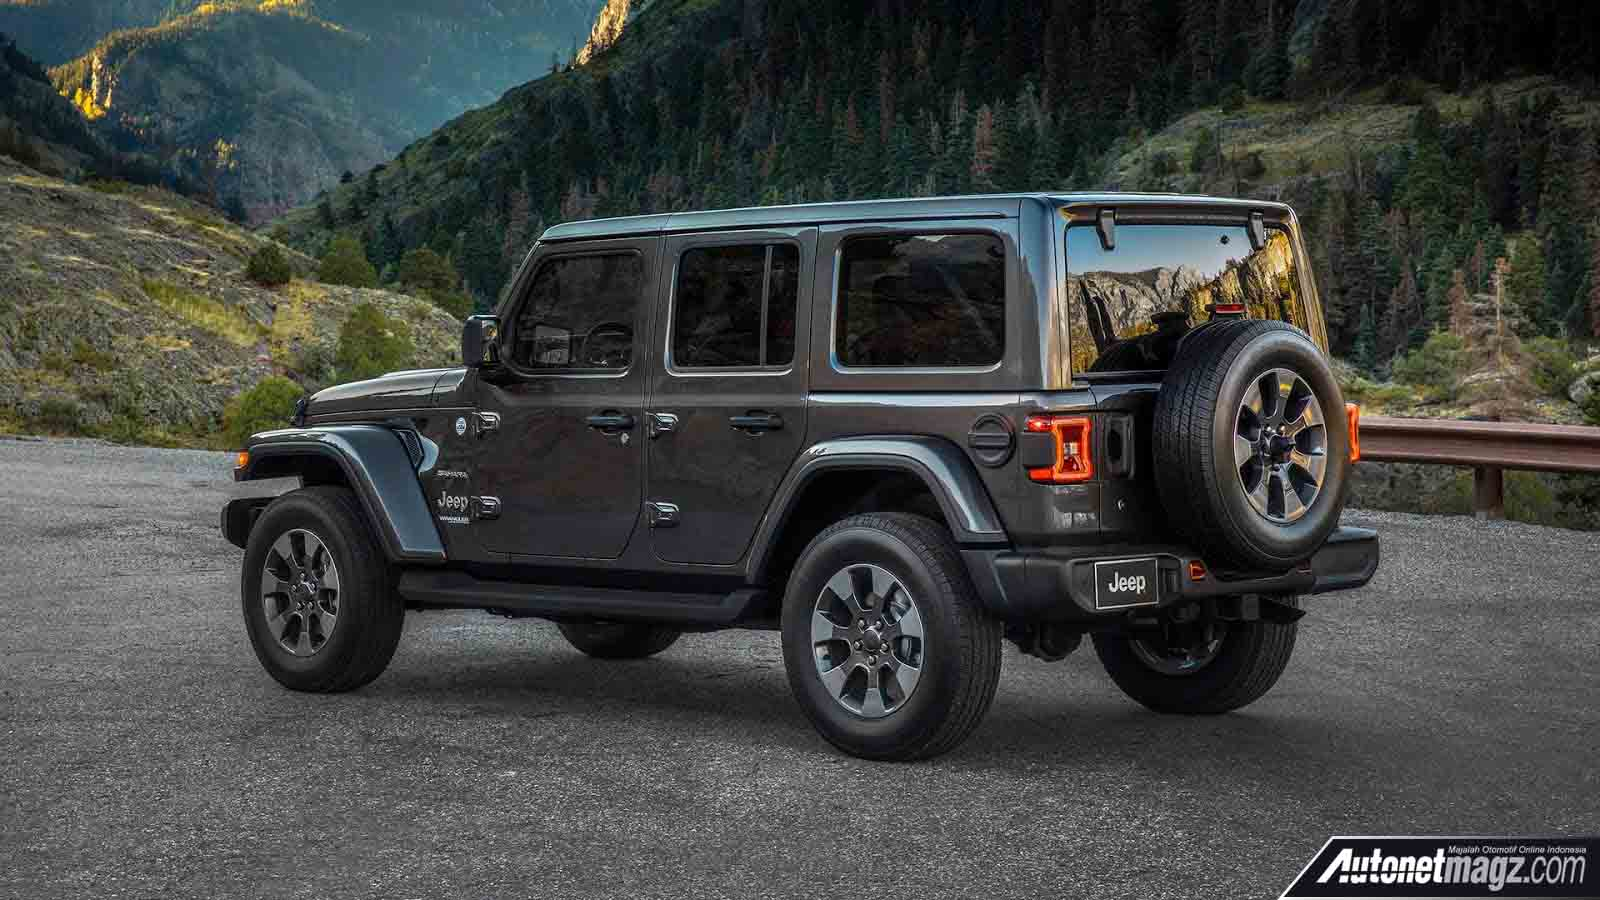 jeep wrangler 2018 hard top long belakang autonetmagz review mobil dan motor baru indonesia. Black Bedroom Furniture Sets. Home Design Ideas